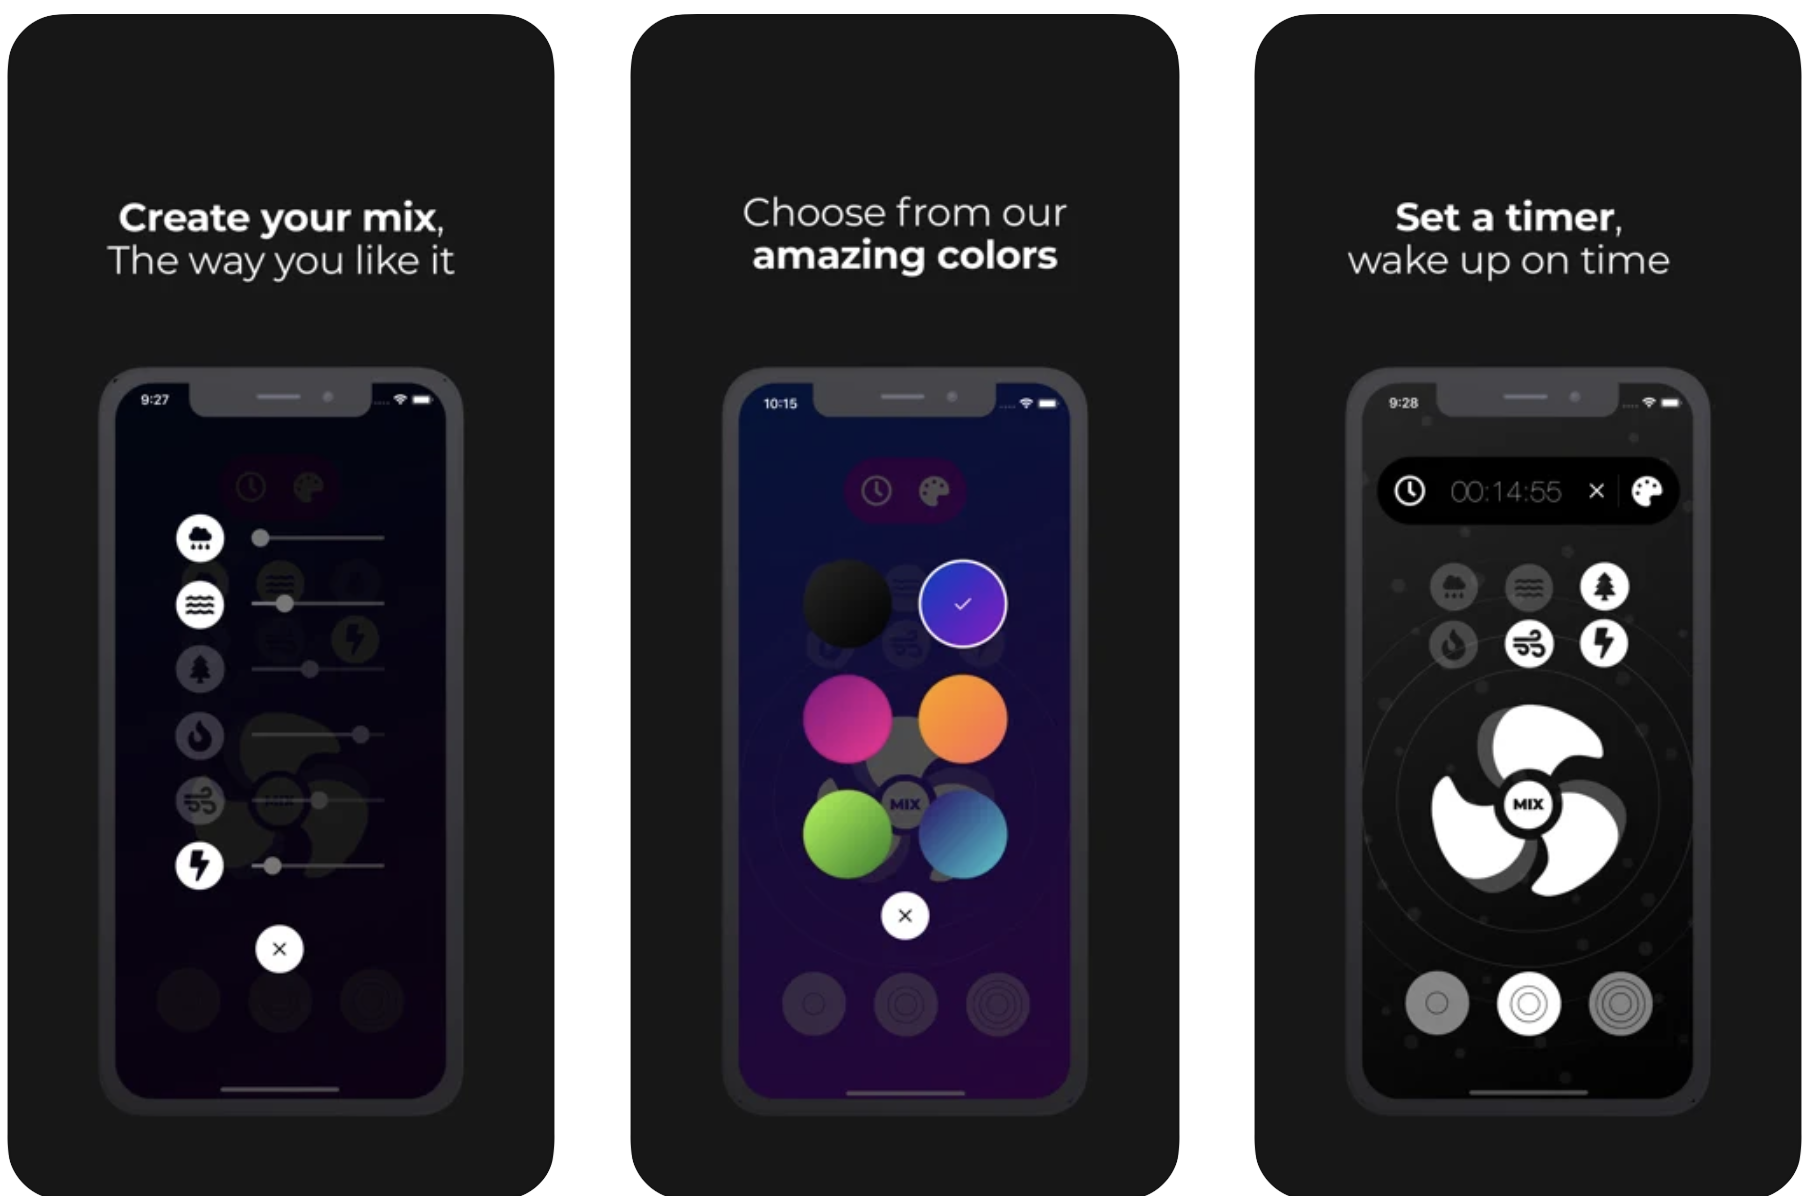 Fan of Sleep, Lockcard, PewPew Live, and other apps to check out this weekend